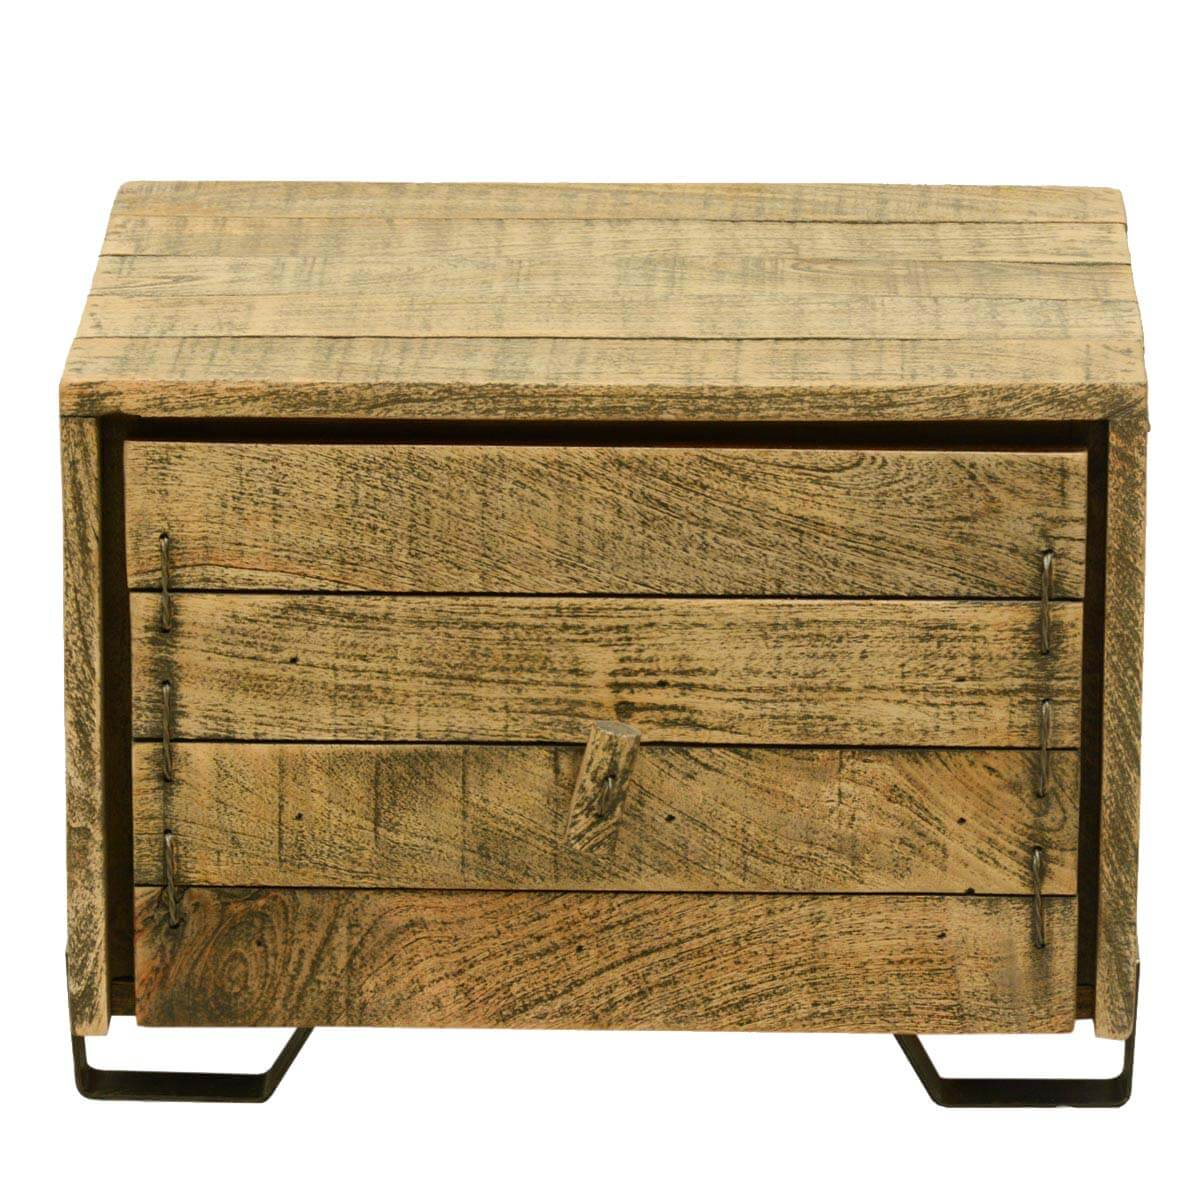 Rustic Wood End Table Rustic Simplicity Reclaimed Wood End Table Cube W Drawer